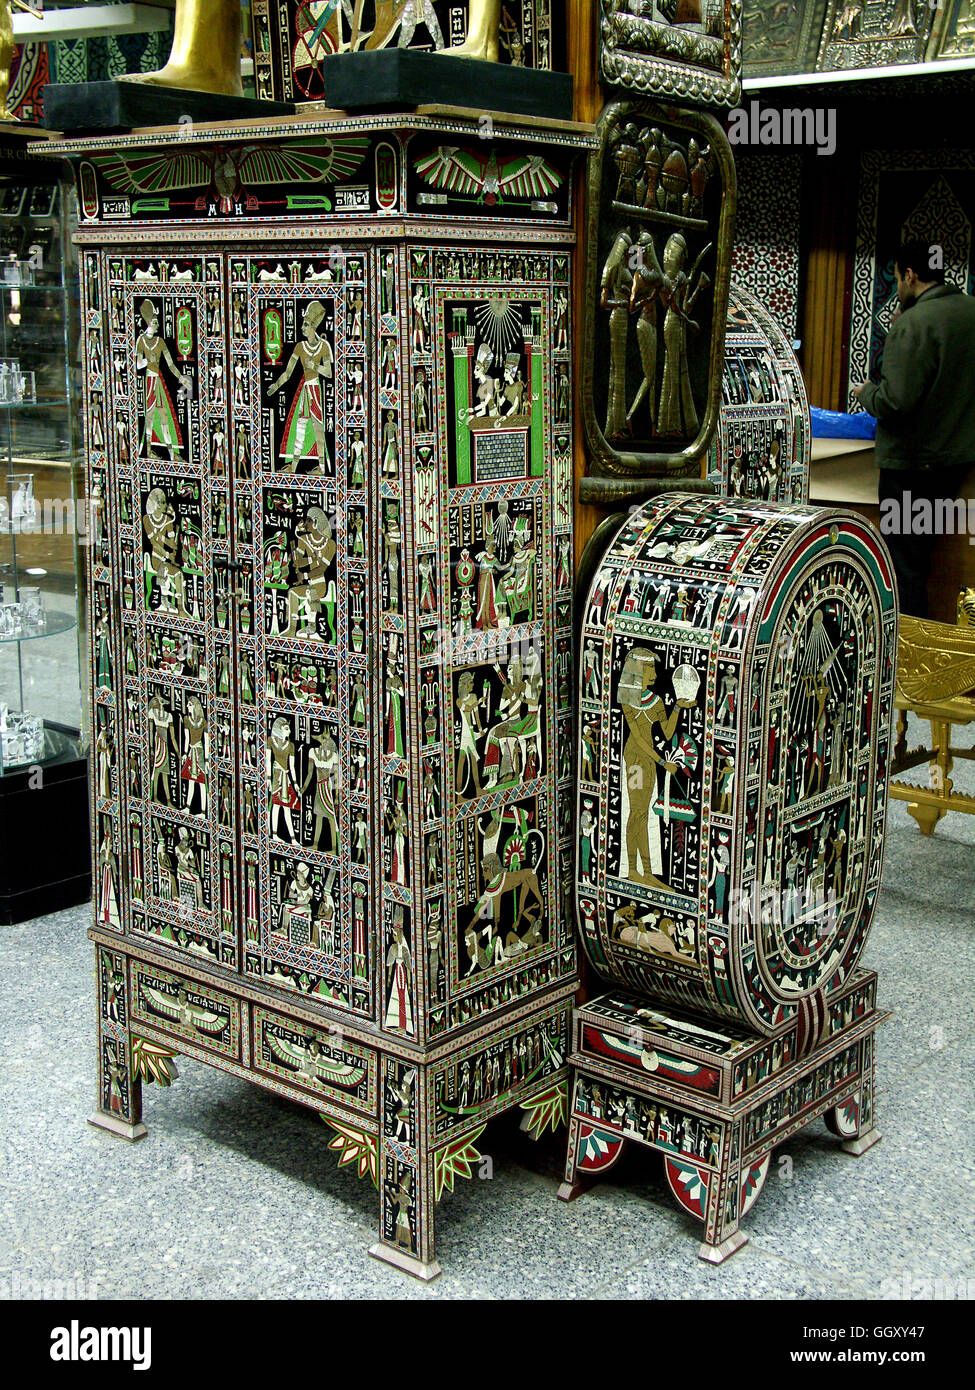 Stock Photo   Store In The Coptic Neighborhood Of Cairo Selling Furniture  Modeled After Ancient Egyptian Artifacts. Cairo U2013 Egypt